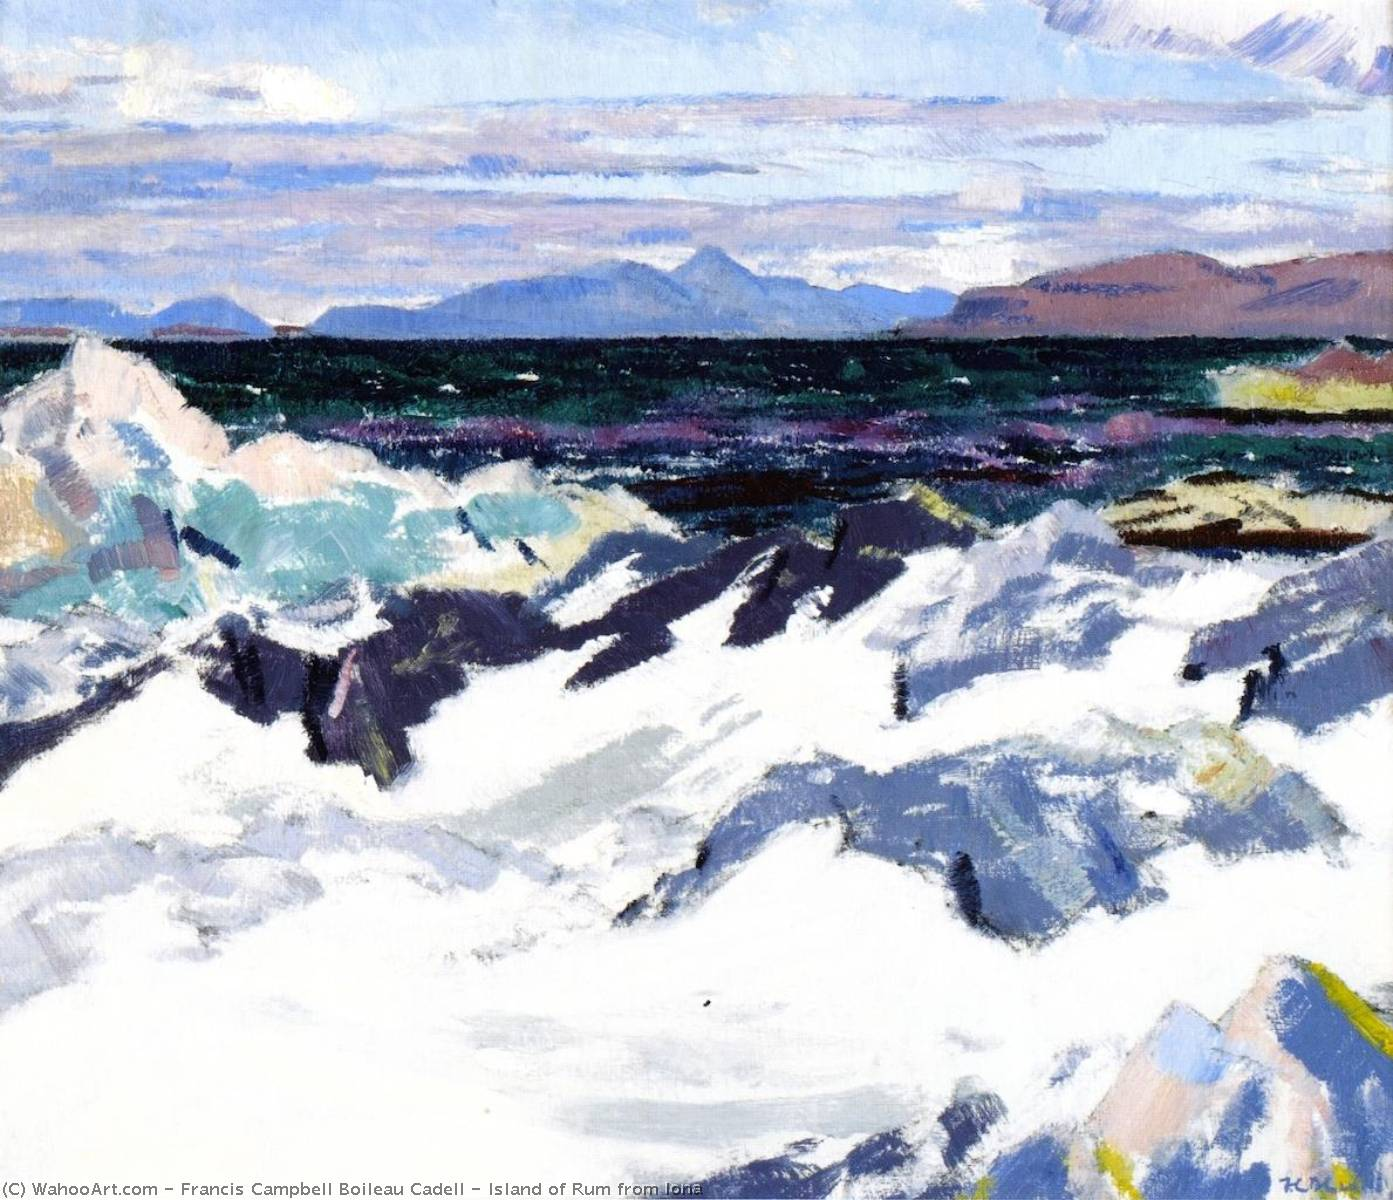 Island of Rum from Iona, Oil On Panel by Francis Campbell Boileau Cadell (1883-1937)